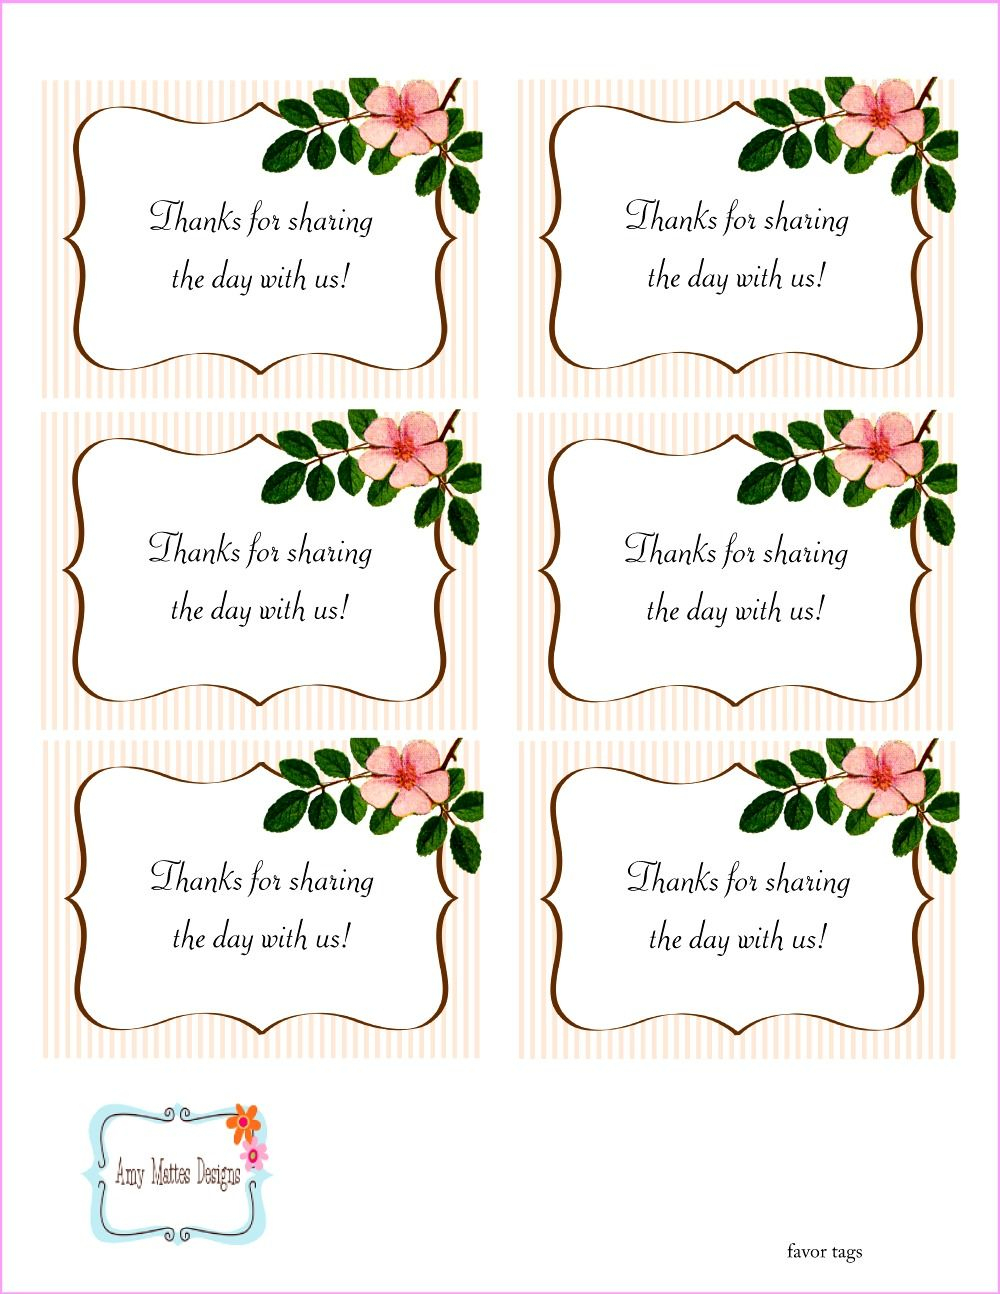 The Beautiful Wedding Favor Tags As Our Identity: Free Printable - Free Printable Wedding Thank You Tags